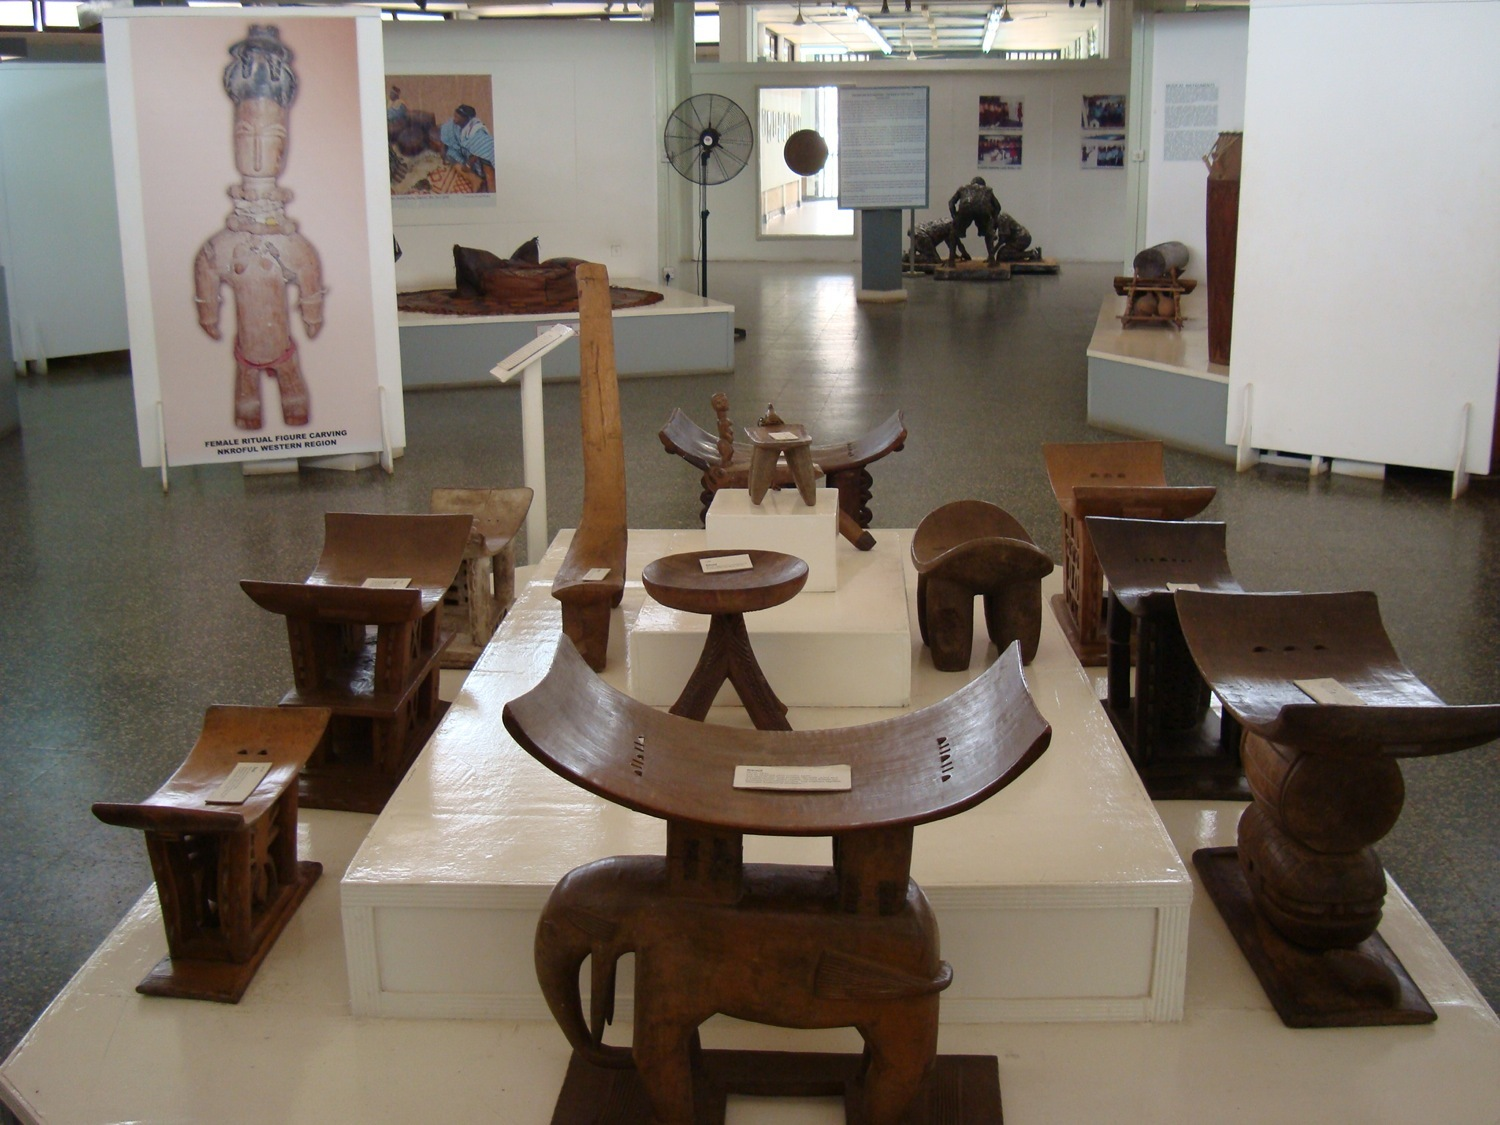 Learn about Ghana's history at the National Museum of Ghana